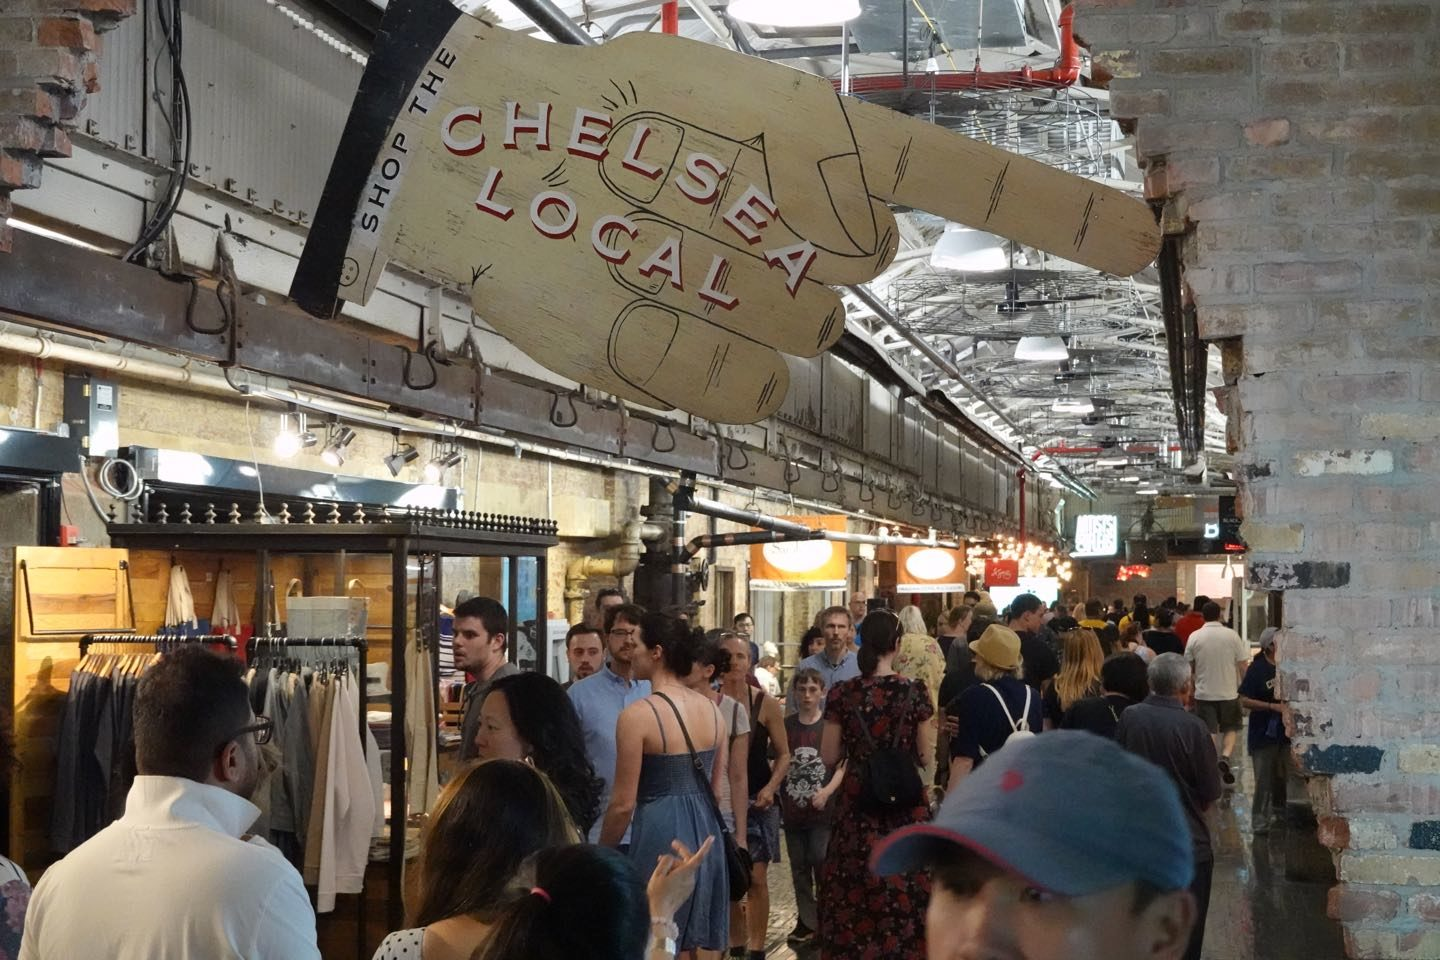 Inside the Chelsea Market.